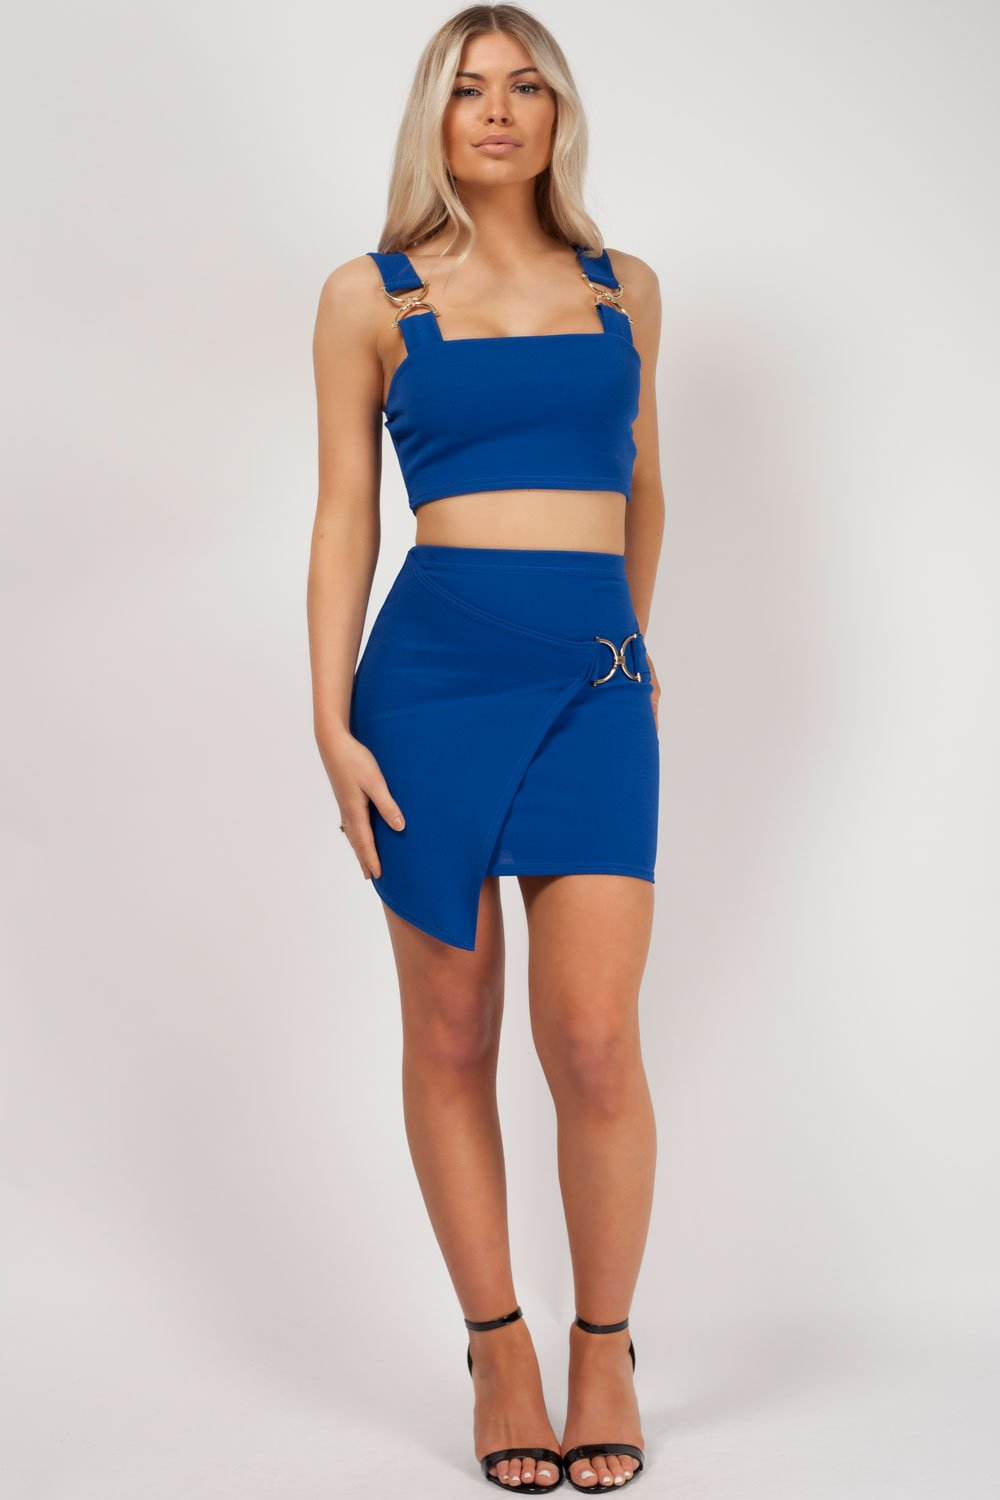 skirt and top set royal blue styledup fashion